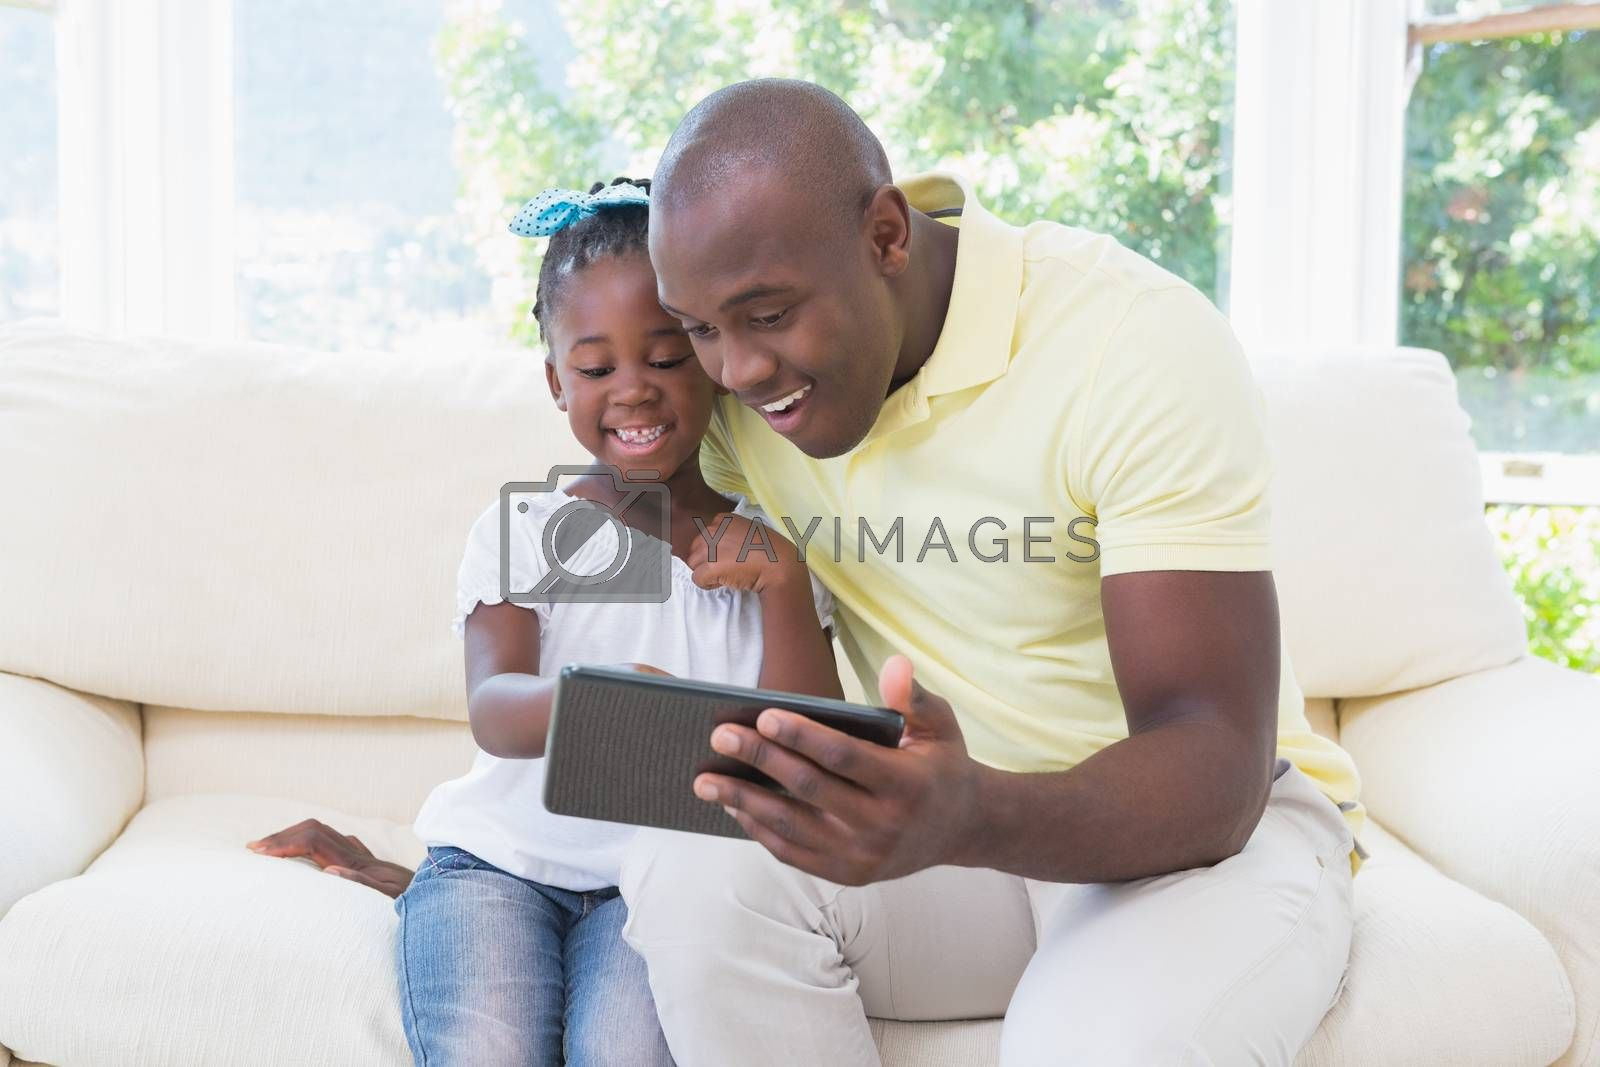 Royalty free image of Happy smiling father using digital tablet with her daughter on couch by Wavebreakmedia